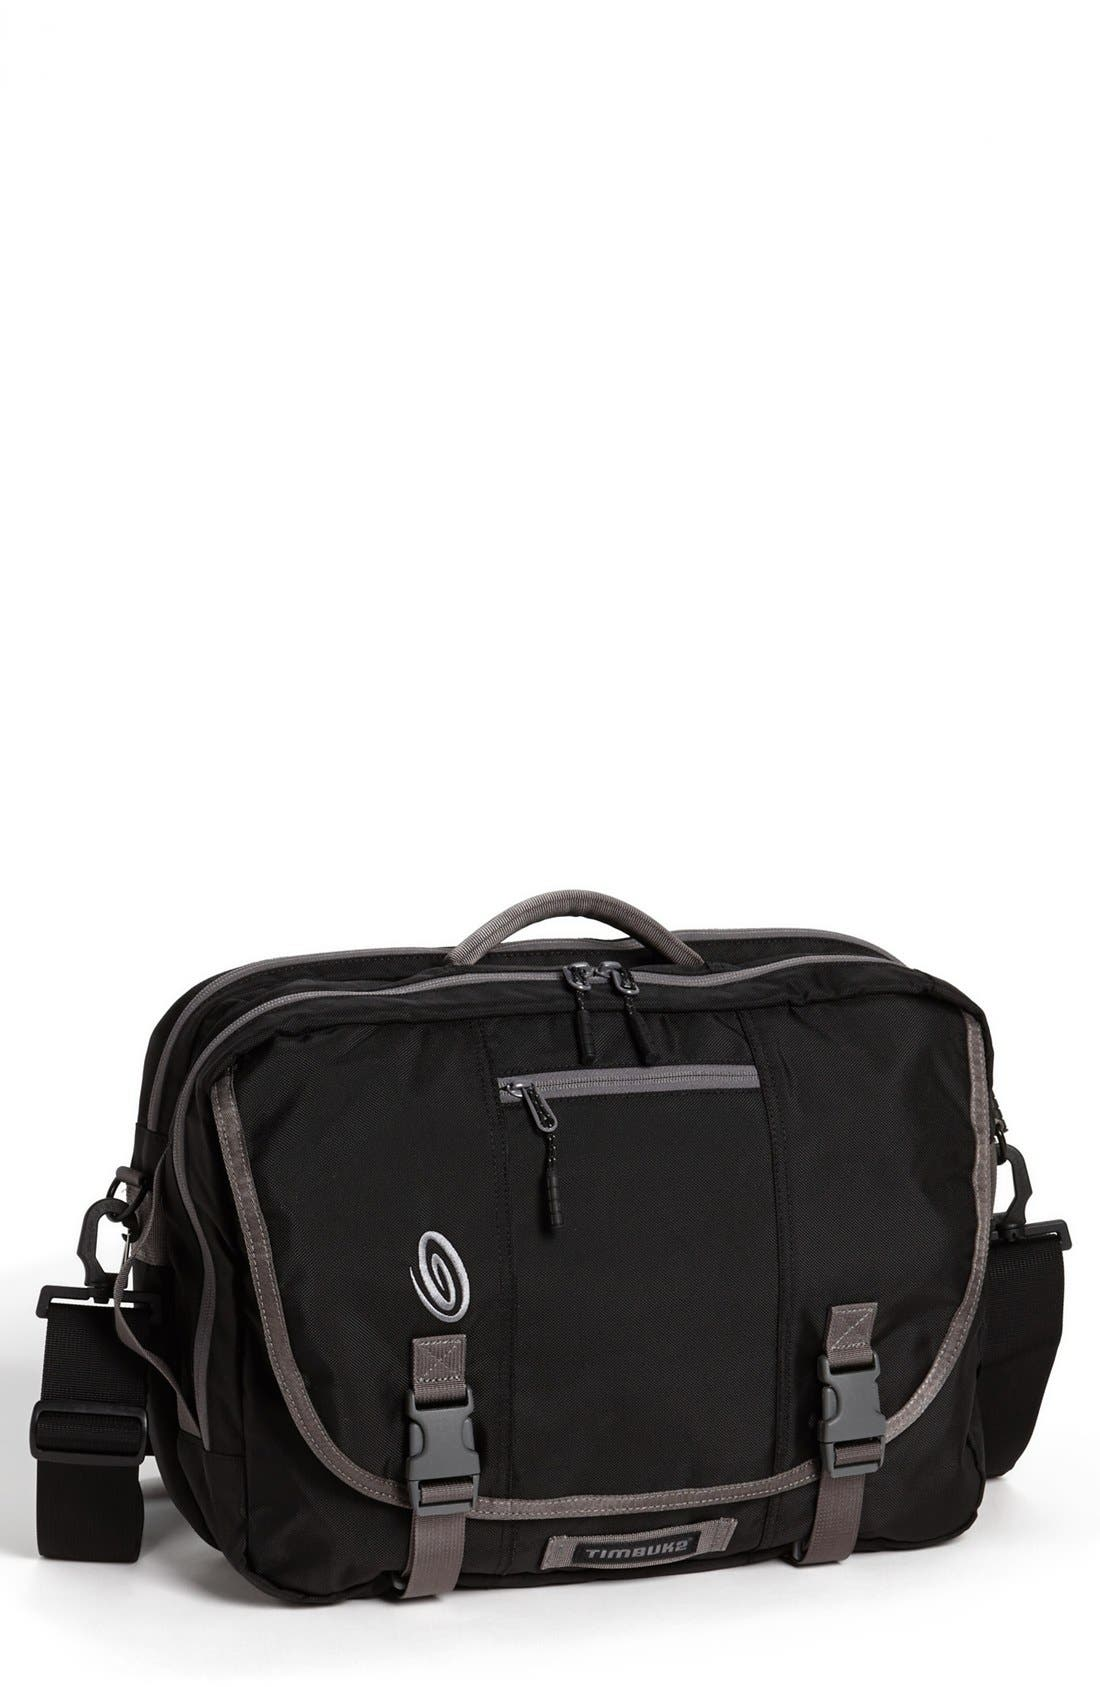 Alternate Image 1 Selected - Timbuk2 'Ram' Convertible Backpack